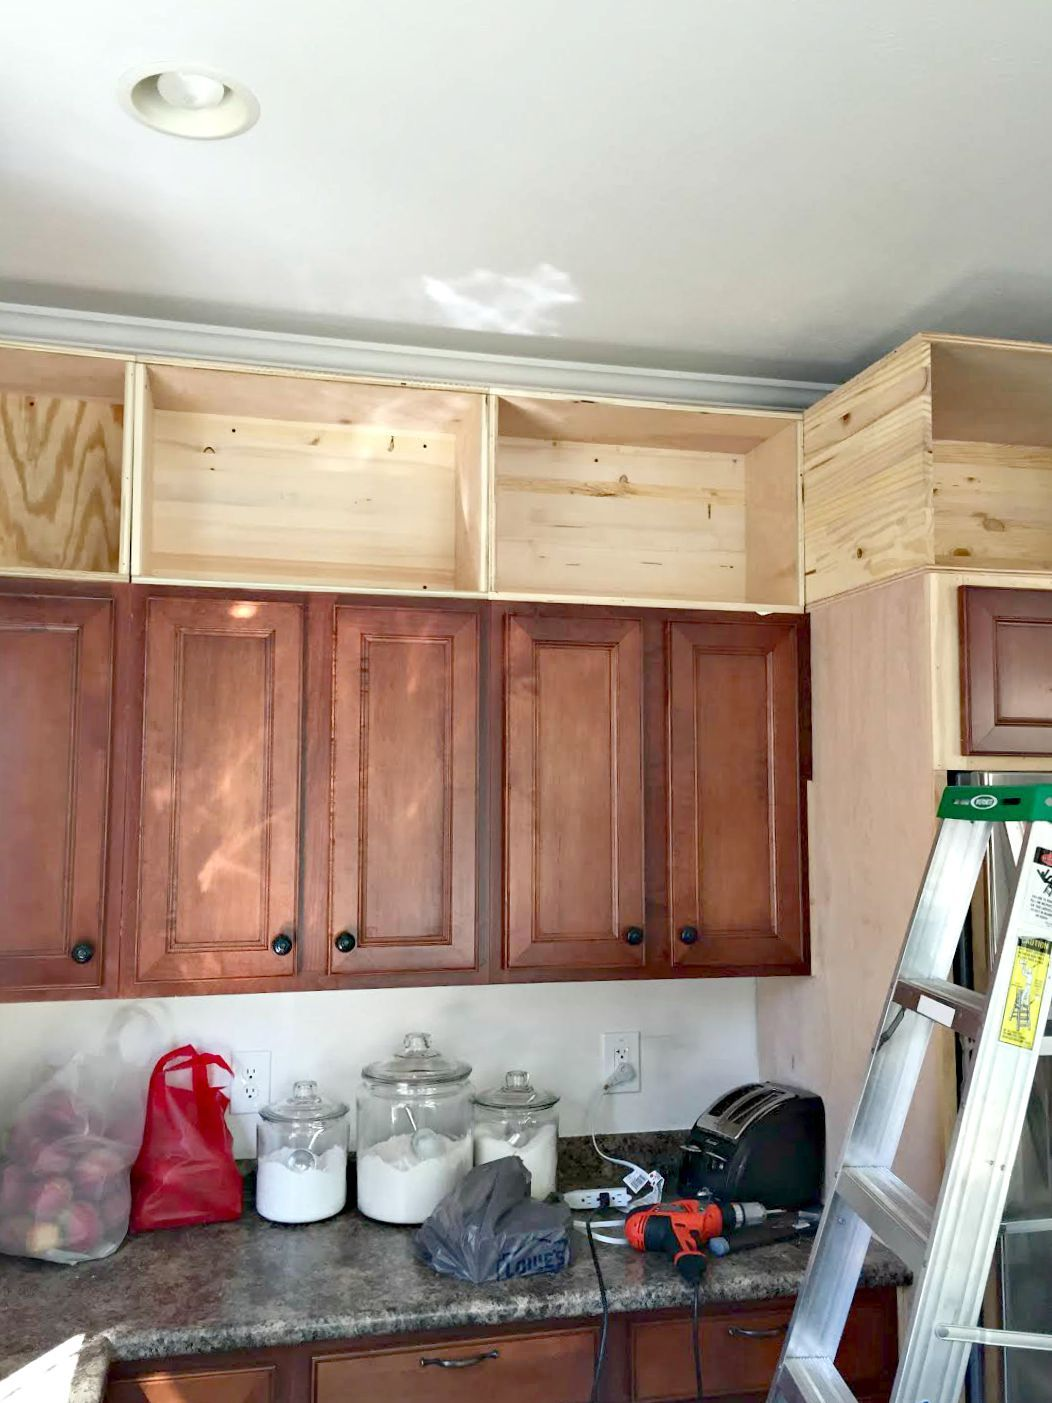 Should Kitchen Cabinets Go Up To Ceiling Building Cabinets Up To The Ceiling Diy Kitchen Cabinets